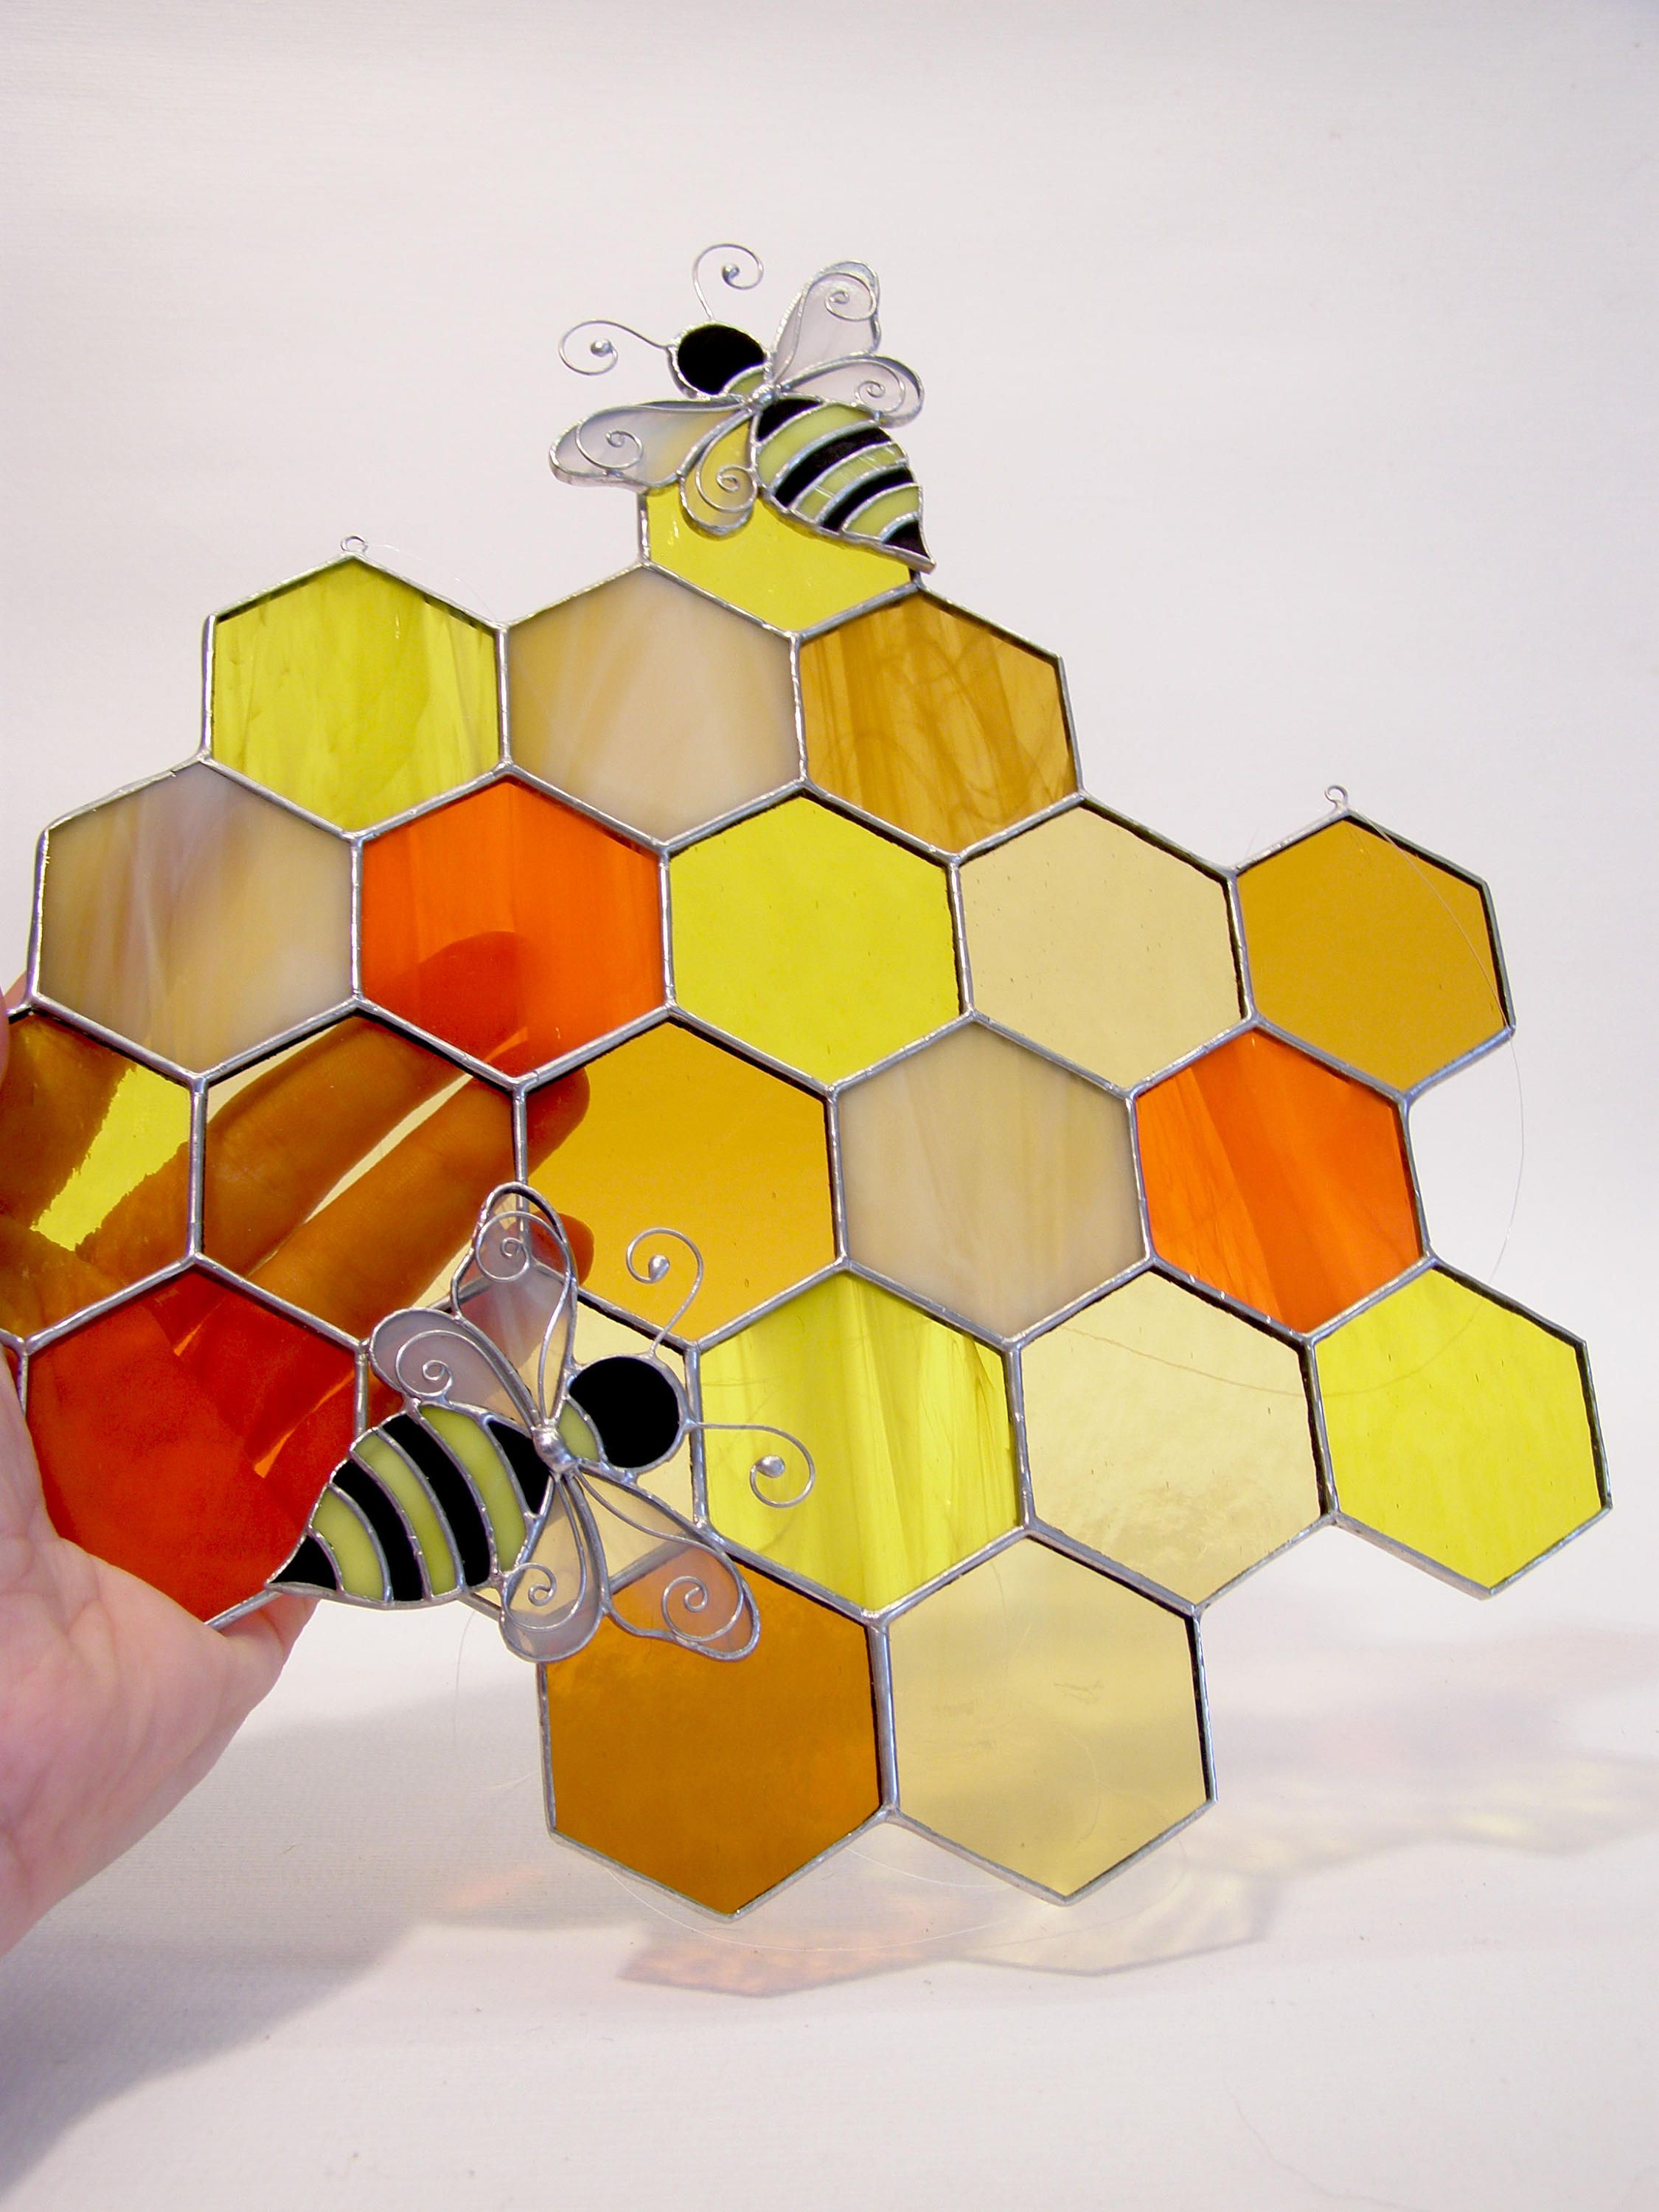 Honeycomb, Stained Glass Panel, Suncatcher, Bumble Bee, Geometric ...